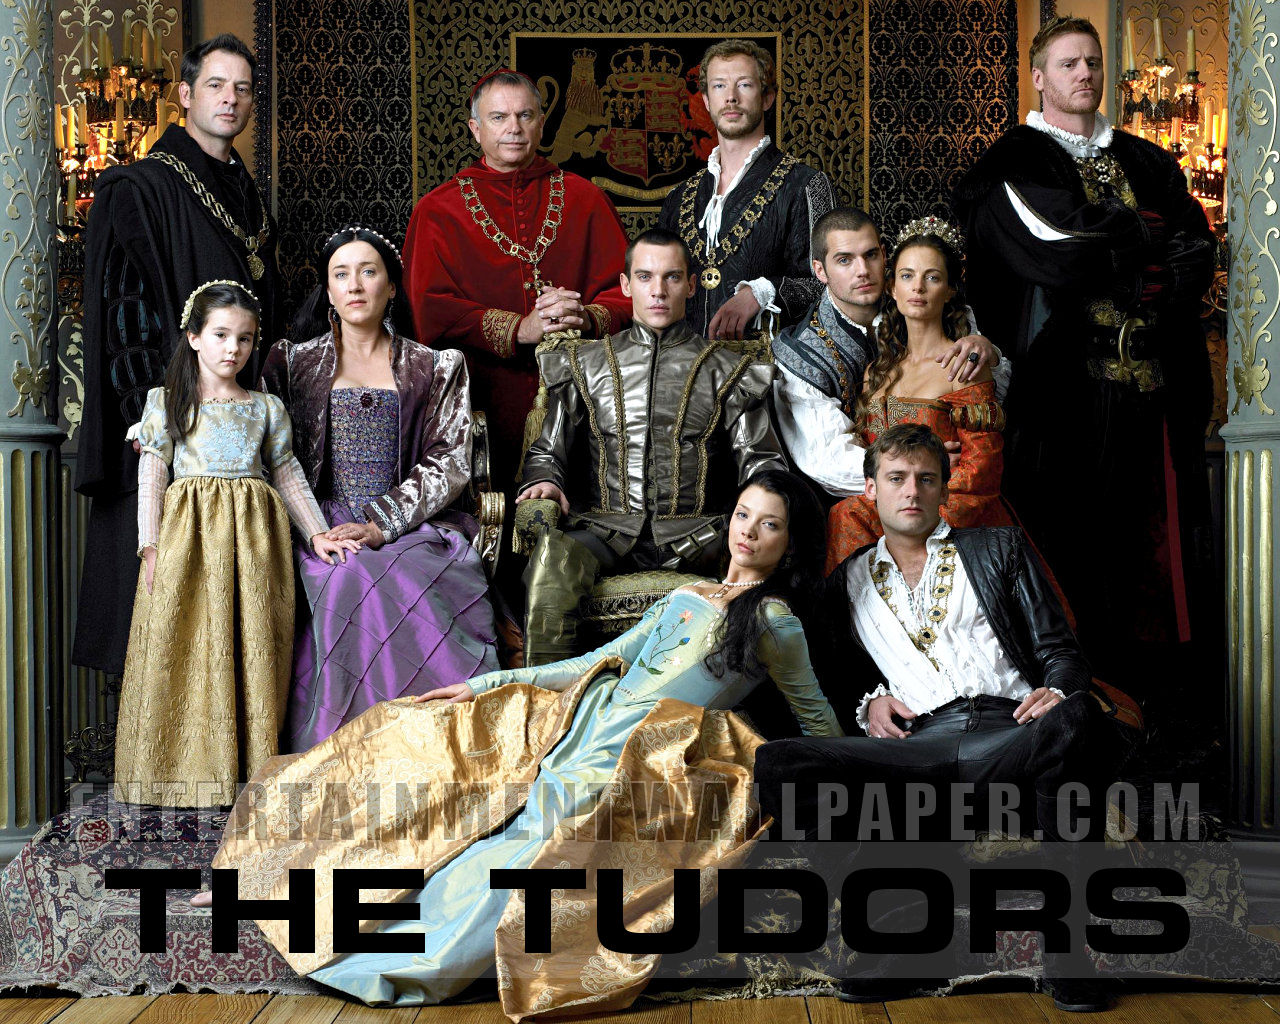 the tudors The tudor period is the period between 1485 and 1603 in england and wales and includes the elizabethan period during the reign of elizabeth i until 1603 the tudor period coincides with the dynasty of the house of tudor in england whose first monarch was henry vii (1457-1509) in terms of the entire span, the historian john guy (1988) argues.